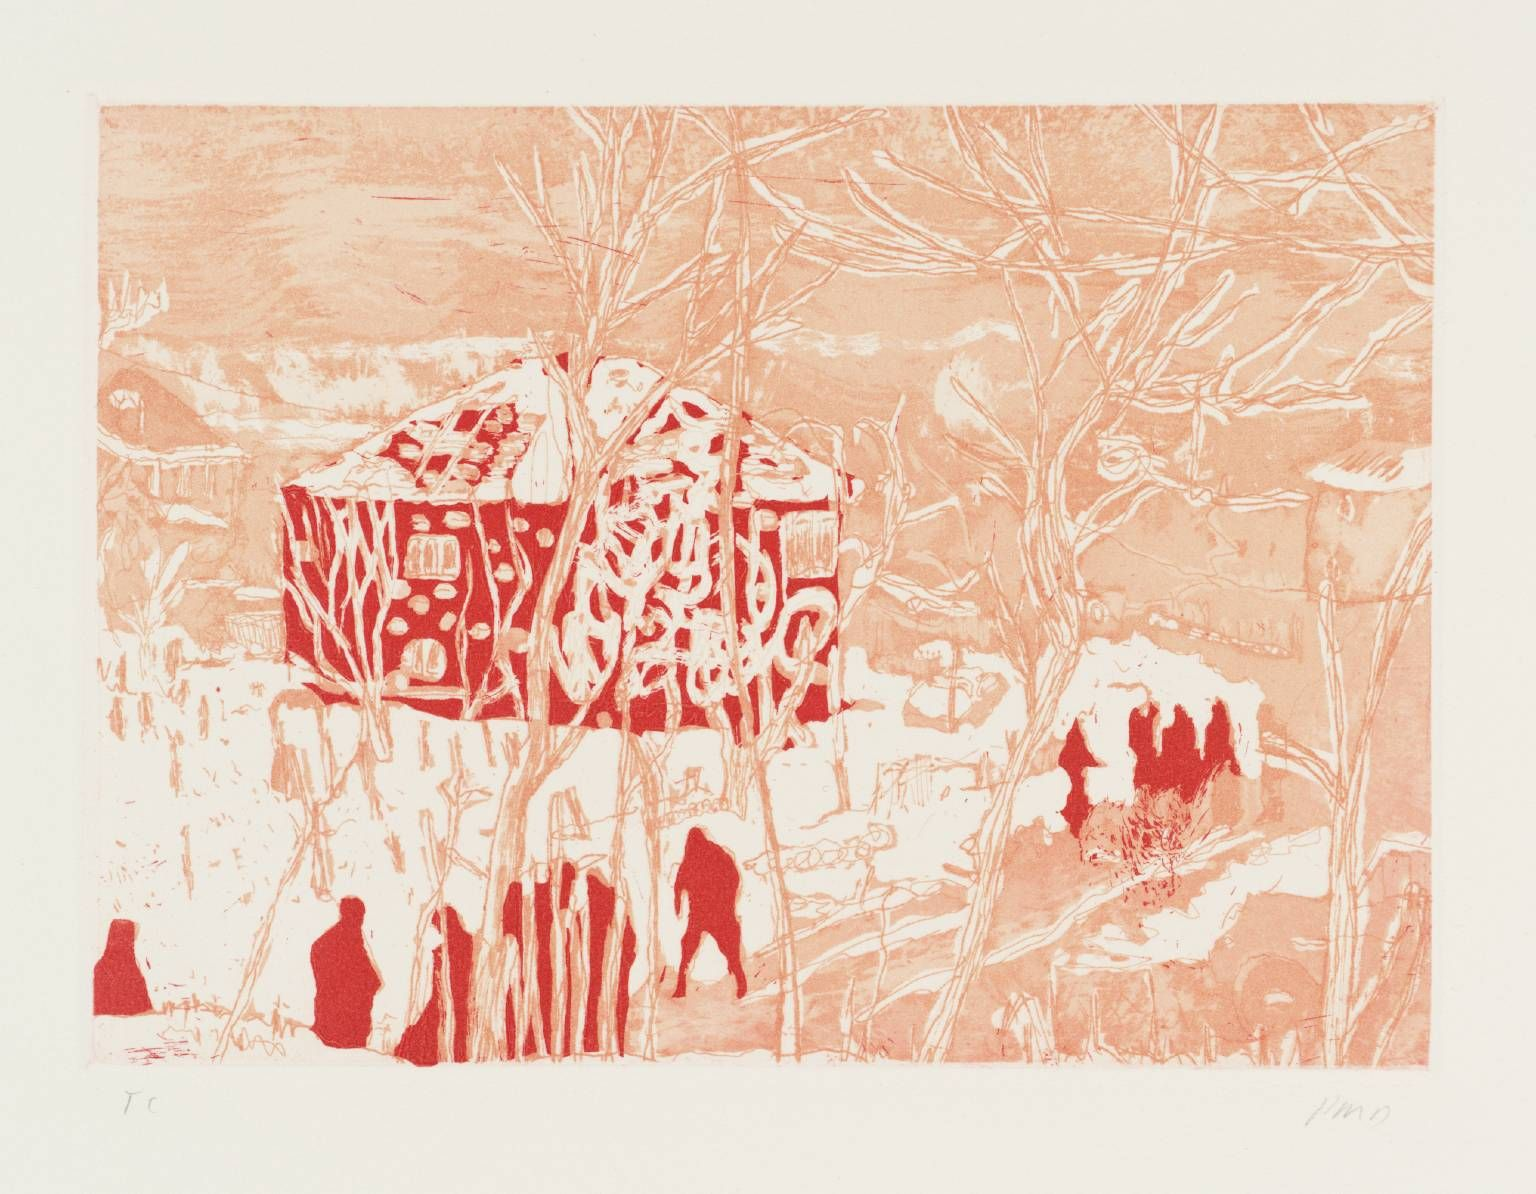 Artist Peter Doig Born 1959 Title Red House From Ten Etchings Date Andrew Smith Denim Merah 33 1996 Medium Etching And Aquatint On Paper Dimensions Image 150 X 205 Mm Collection